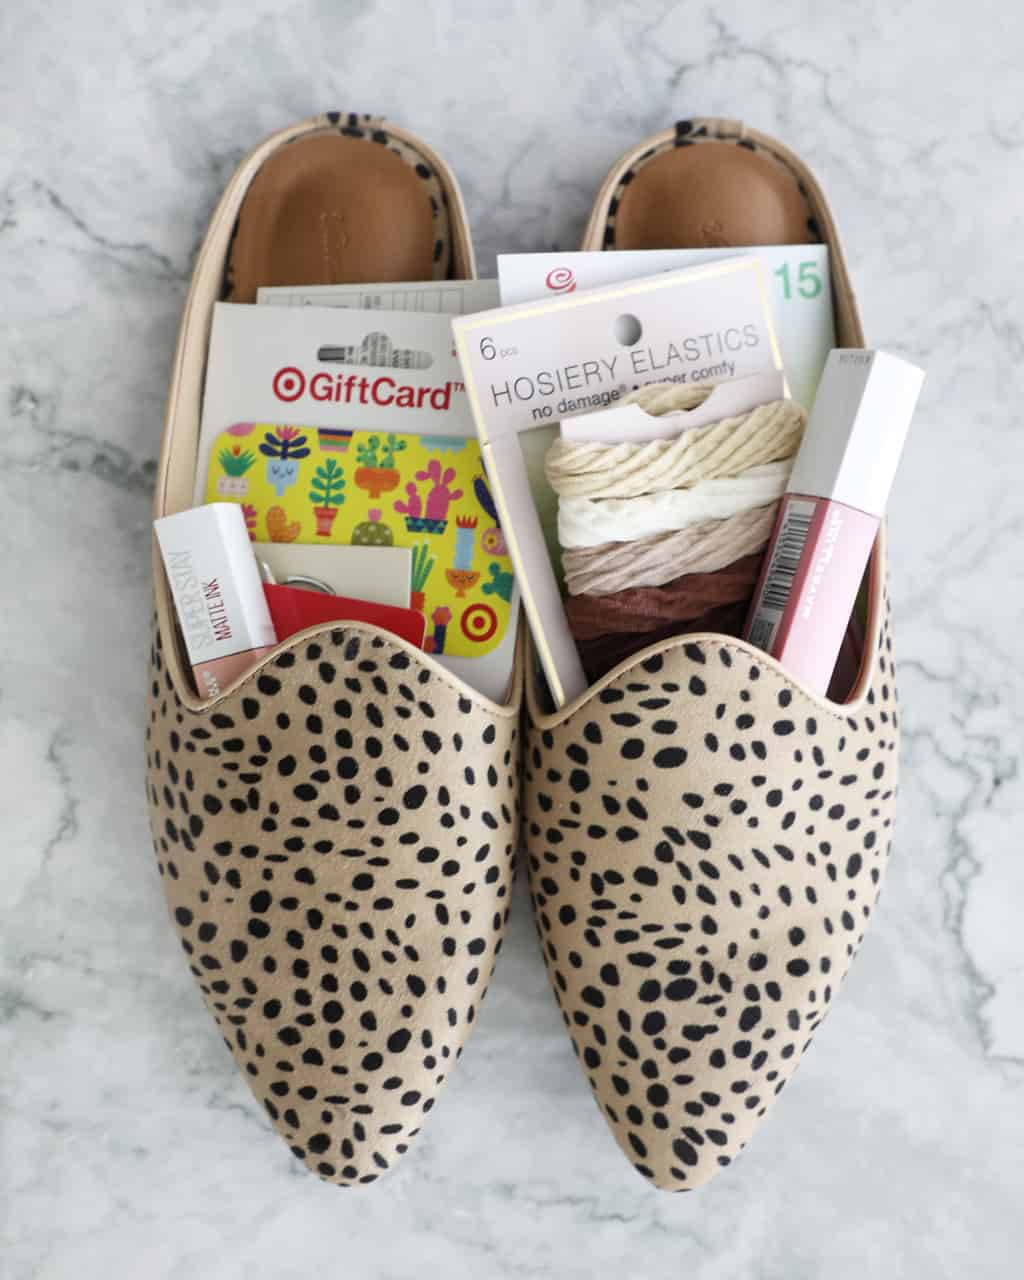 leopard flats stuffed with small gifts and gift cards